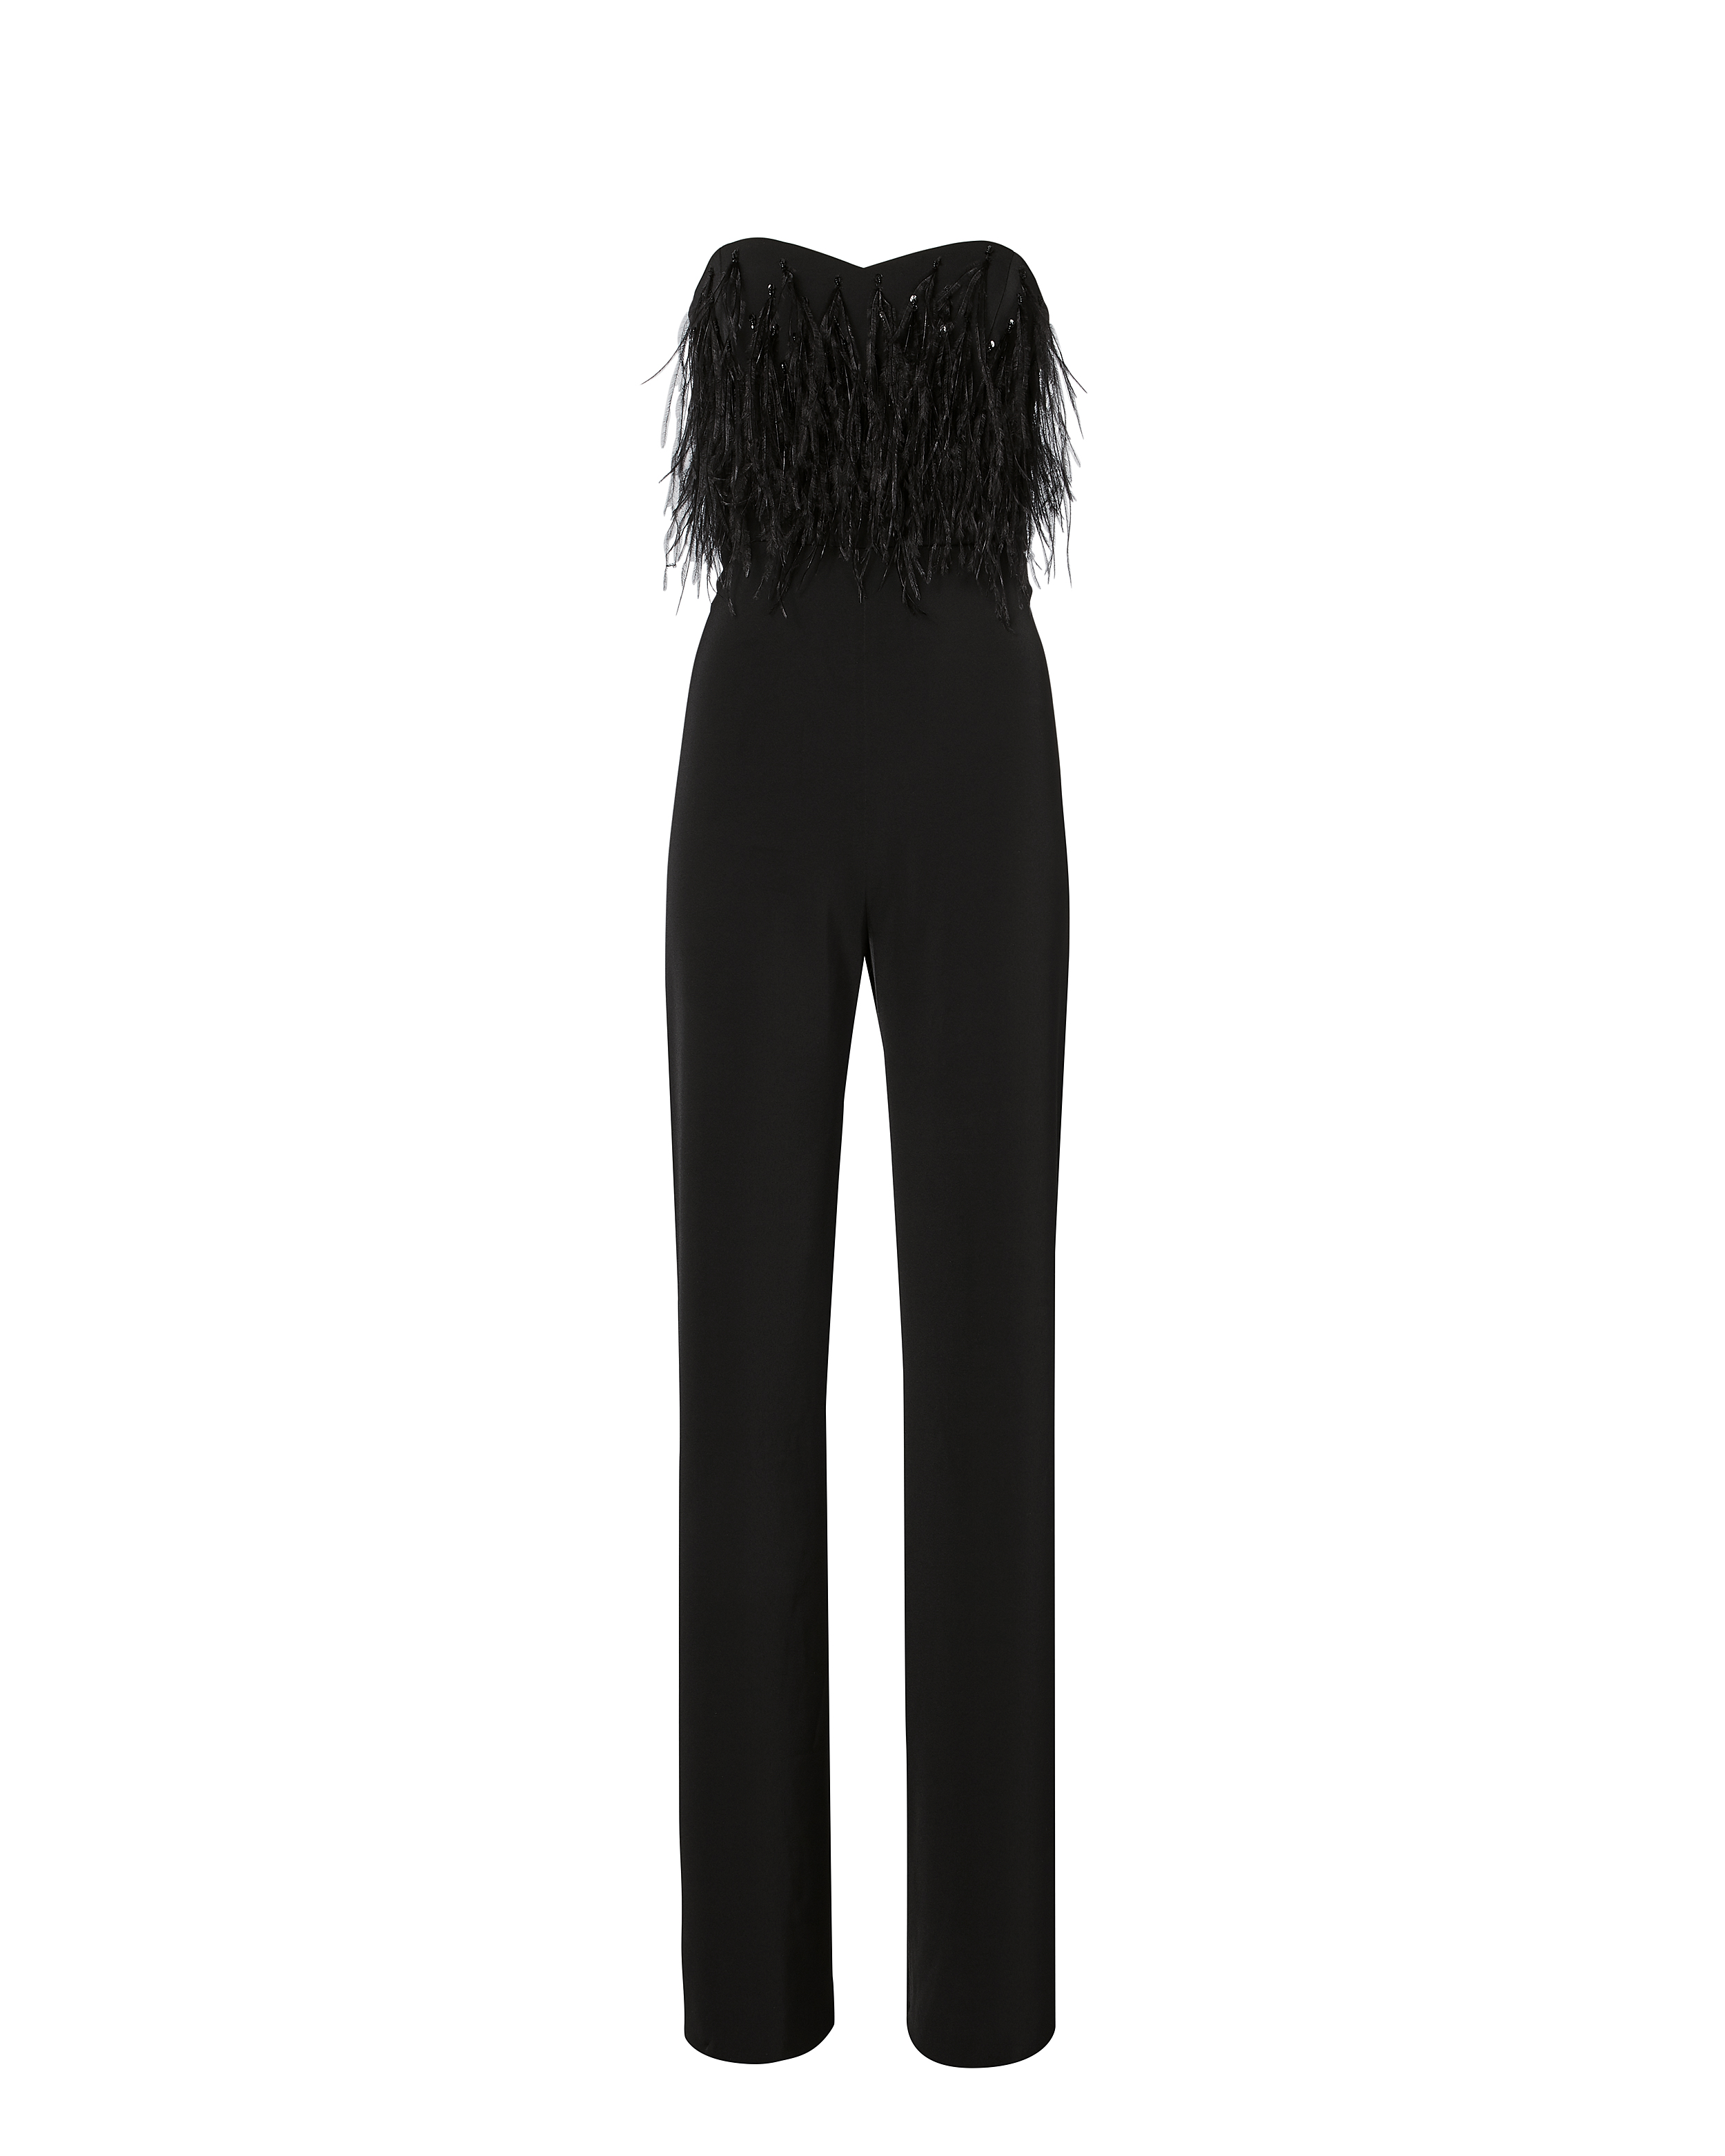 Aurelie Feathered Strapless Jumpsuit by Saloni